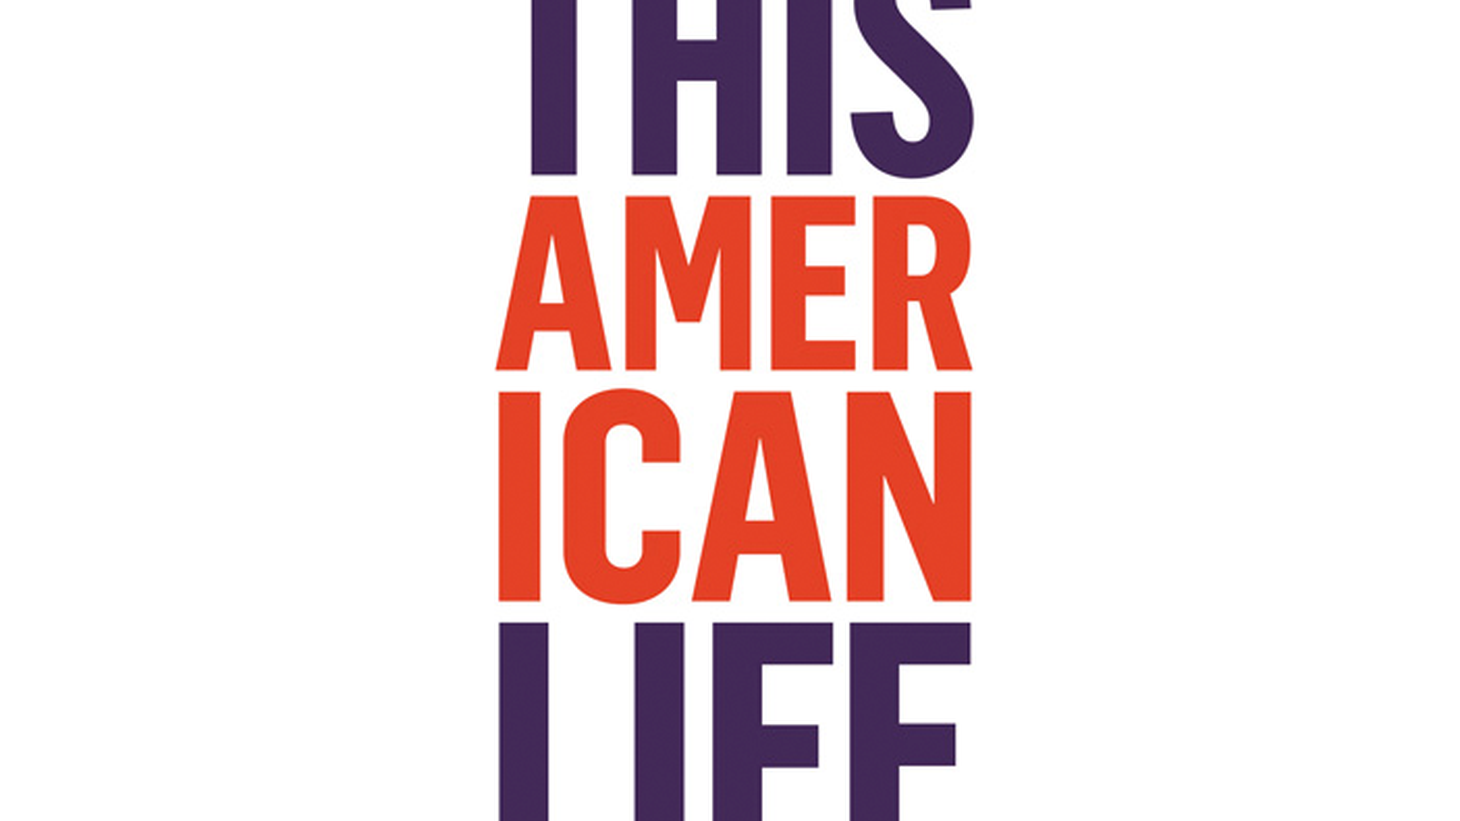 A round-up of favorite stories from This American Life that reminds us what makes radio special.